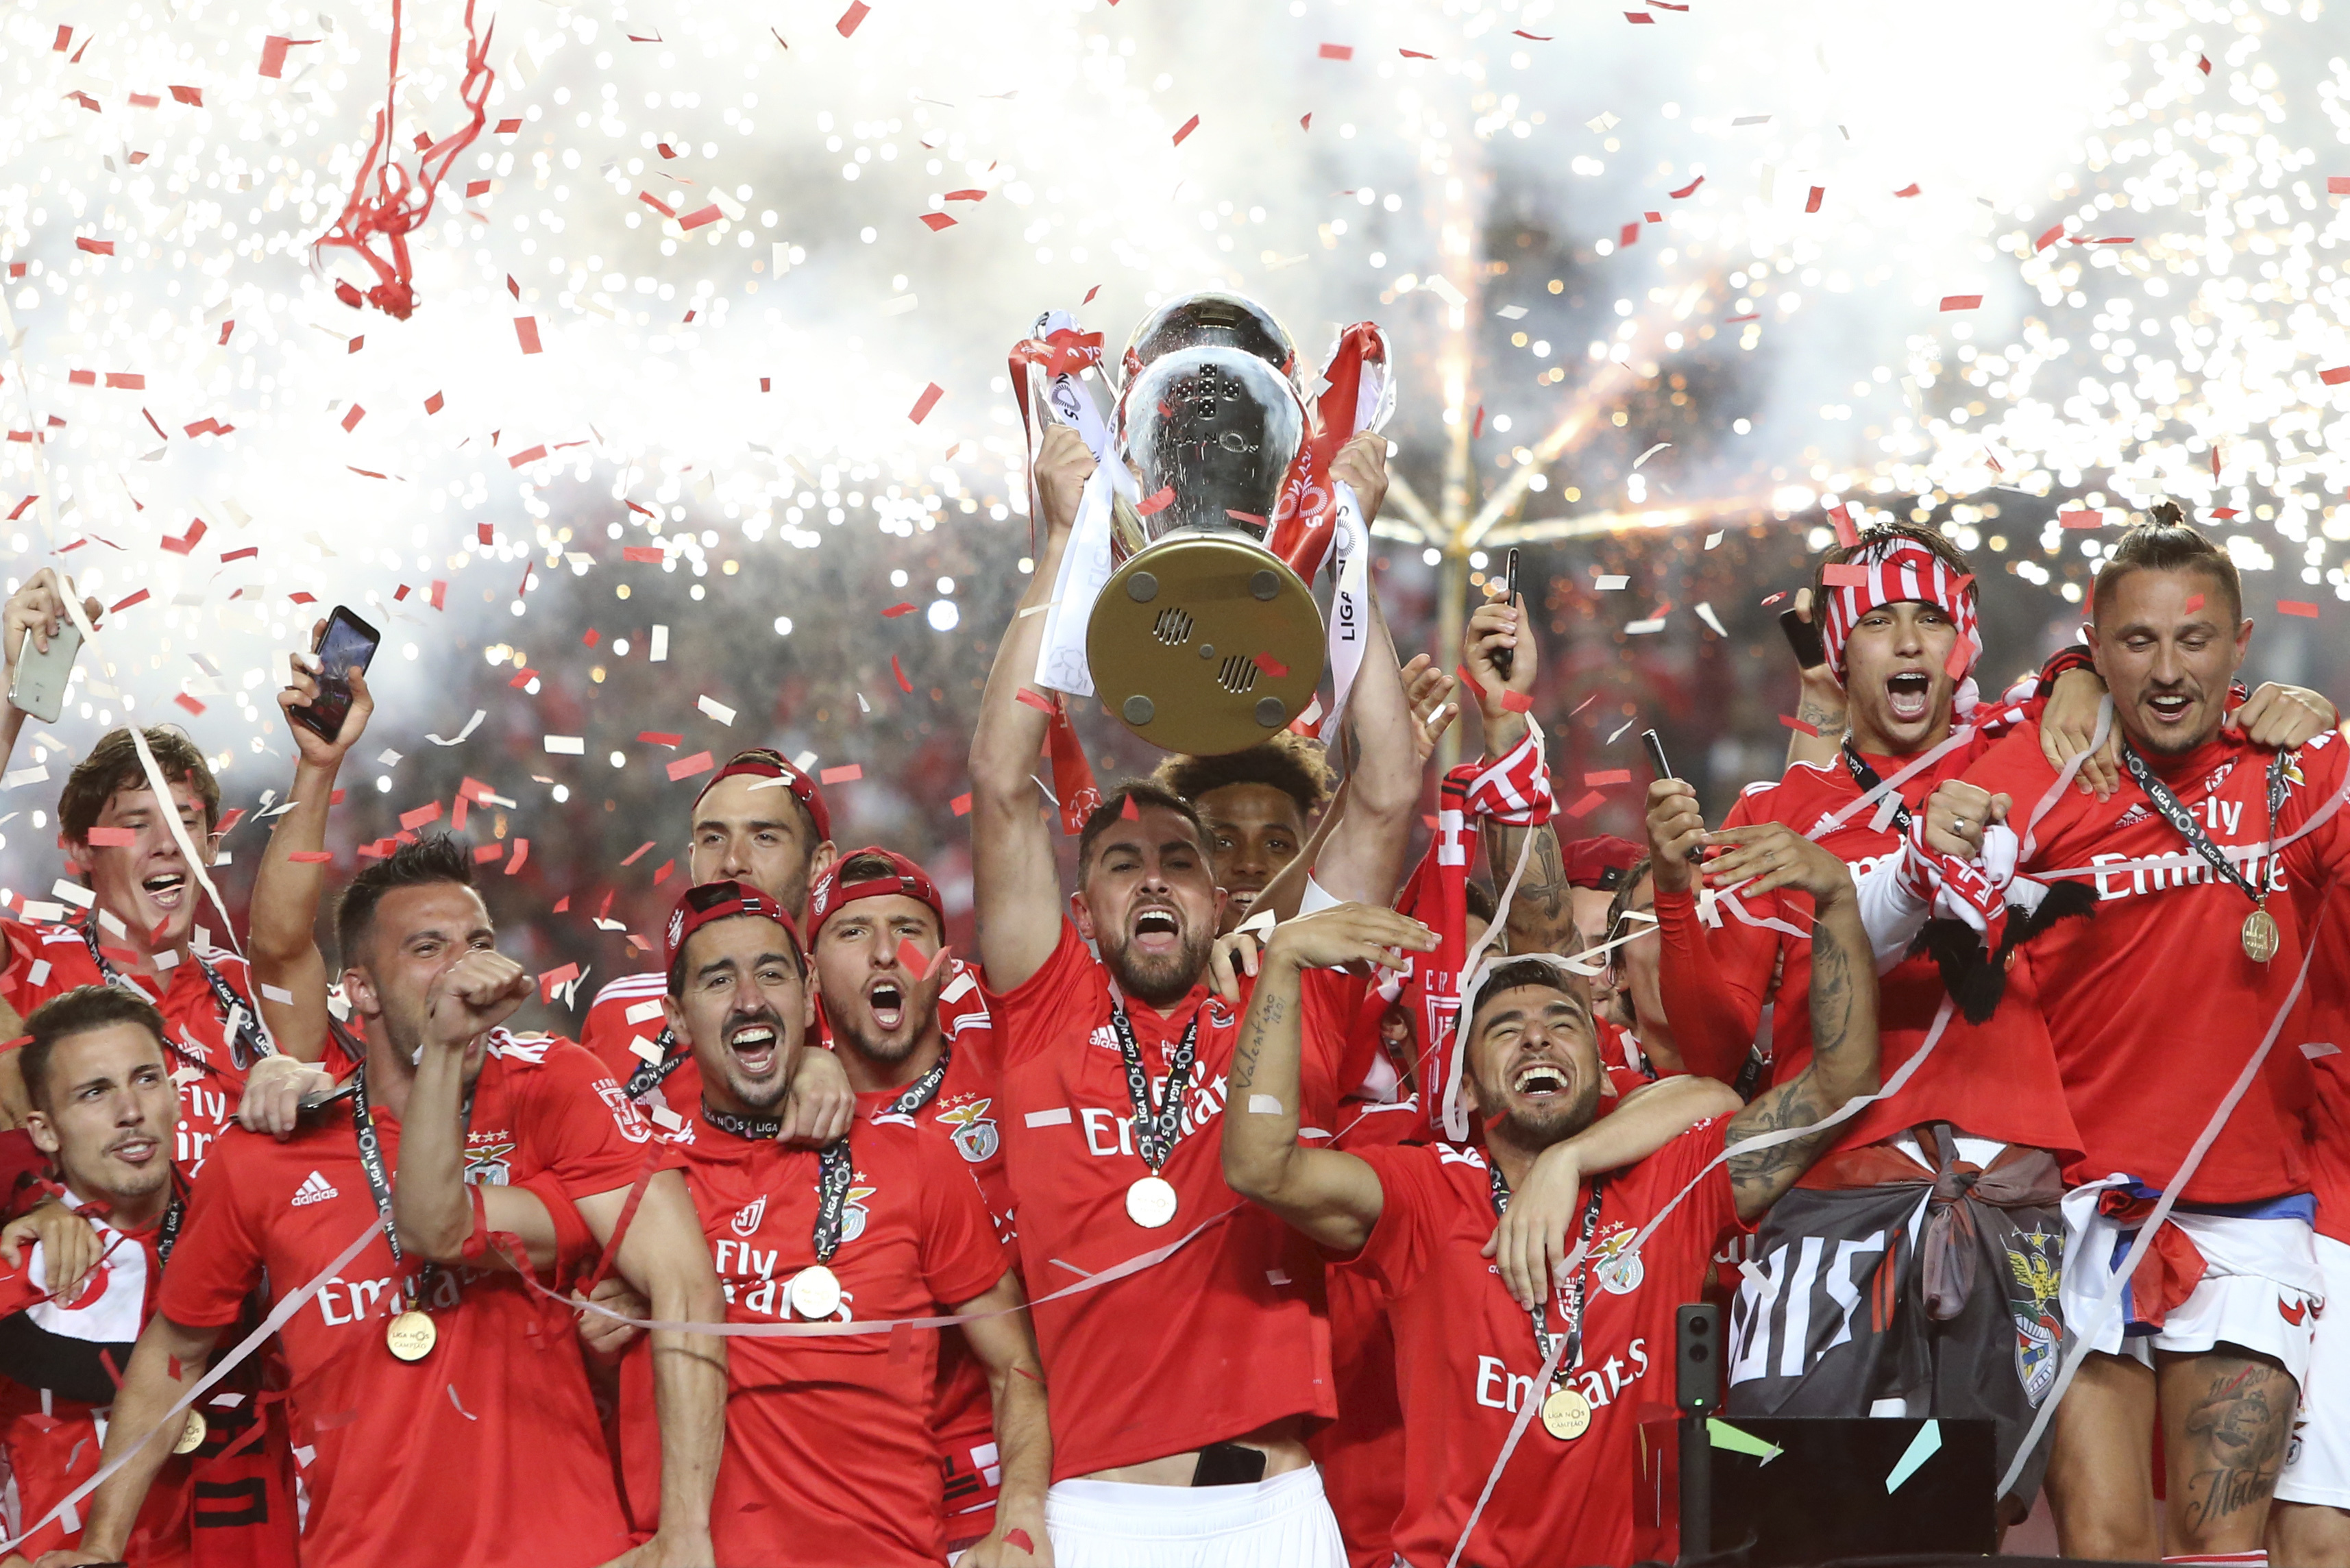 Portuguese soccer league next in line to resume in Europe